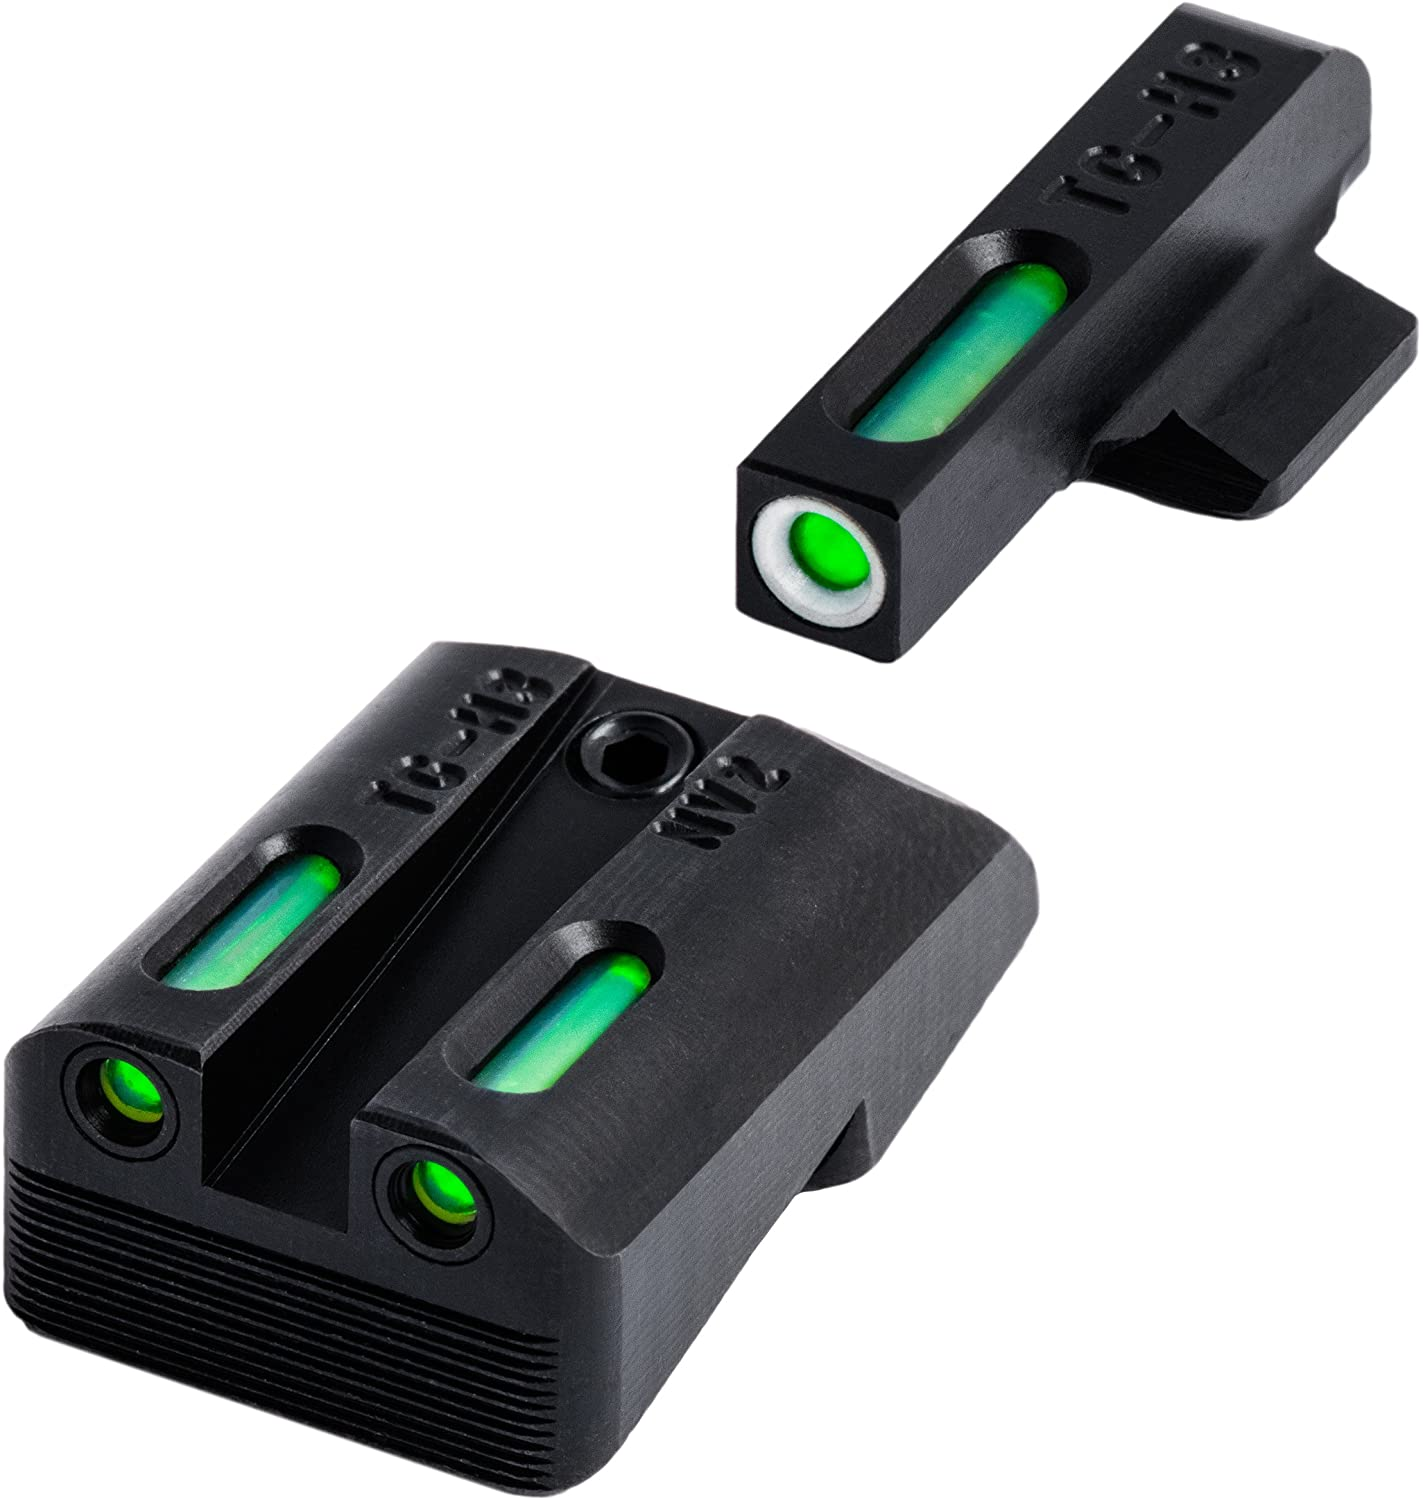 TFX Tritium and Fiber-Optic Xtreme Handgun Sights for 1911 Pistols